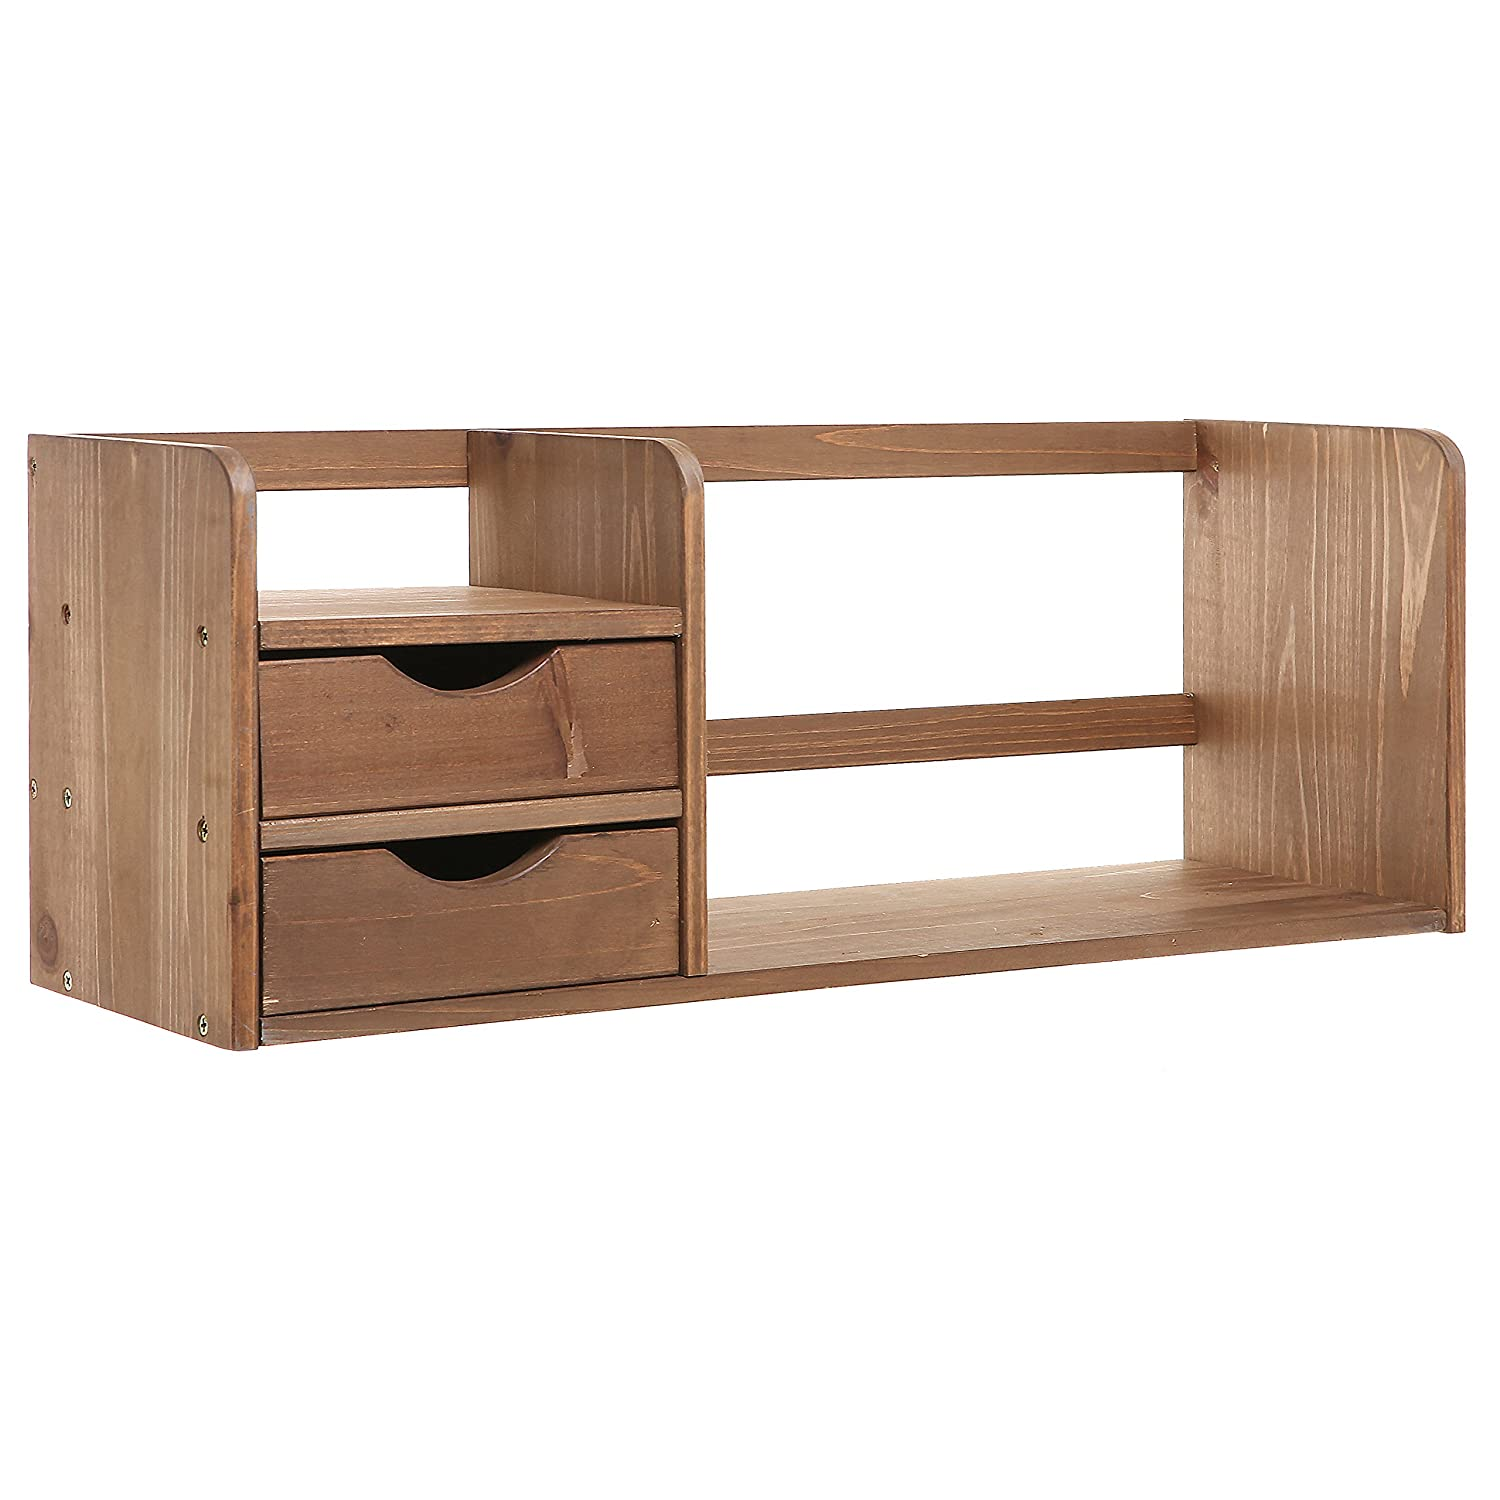 Marvelous photograph of Drawer Organizers R Decor Brown Wood Office Desk Drawer Organizer Home  with #8C5E3F color and 1500x1500 pixels